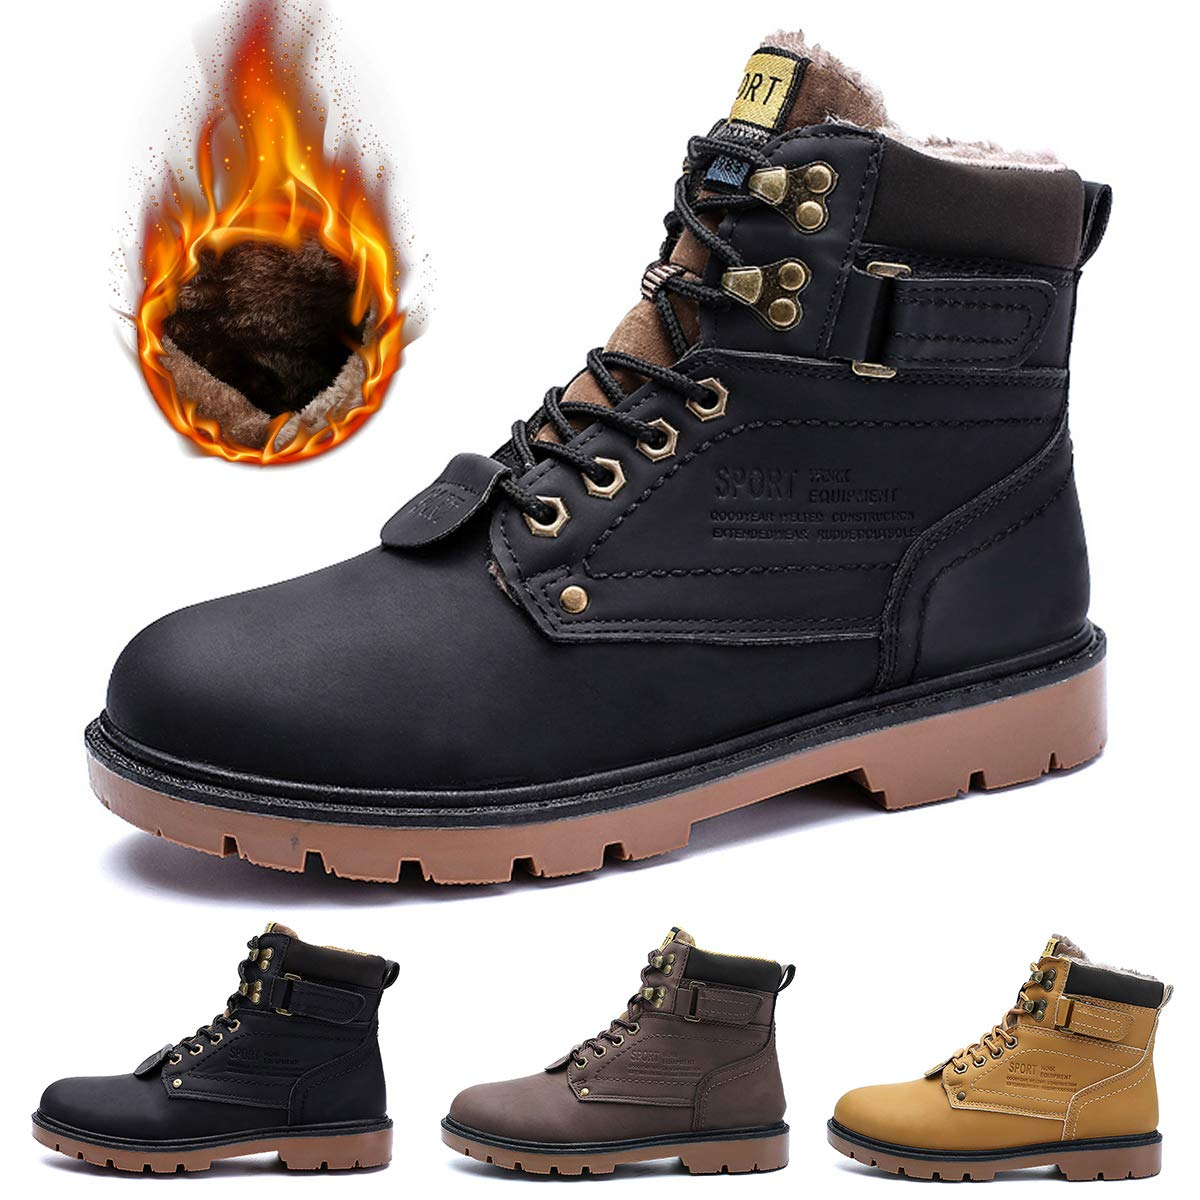 bf23b2cc11e gracosy Mens Ankle Boots Winter Snow Warm Boots Fur Lined Lace Up Comfy  Ankle Casual Boots Fashion Men Flat Martin Boots Outdoor Anti Slip High Top  Work ...